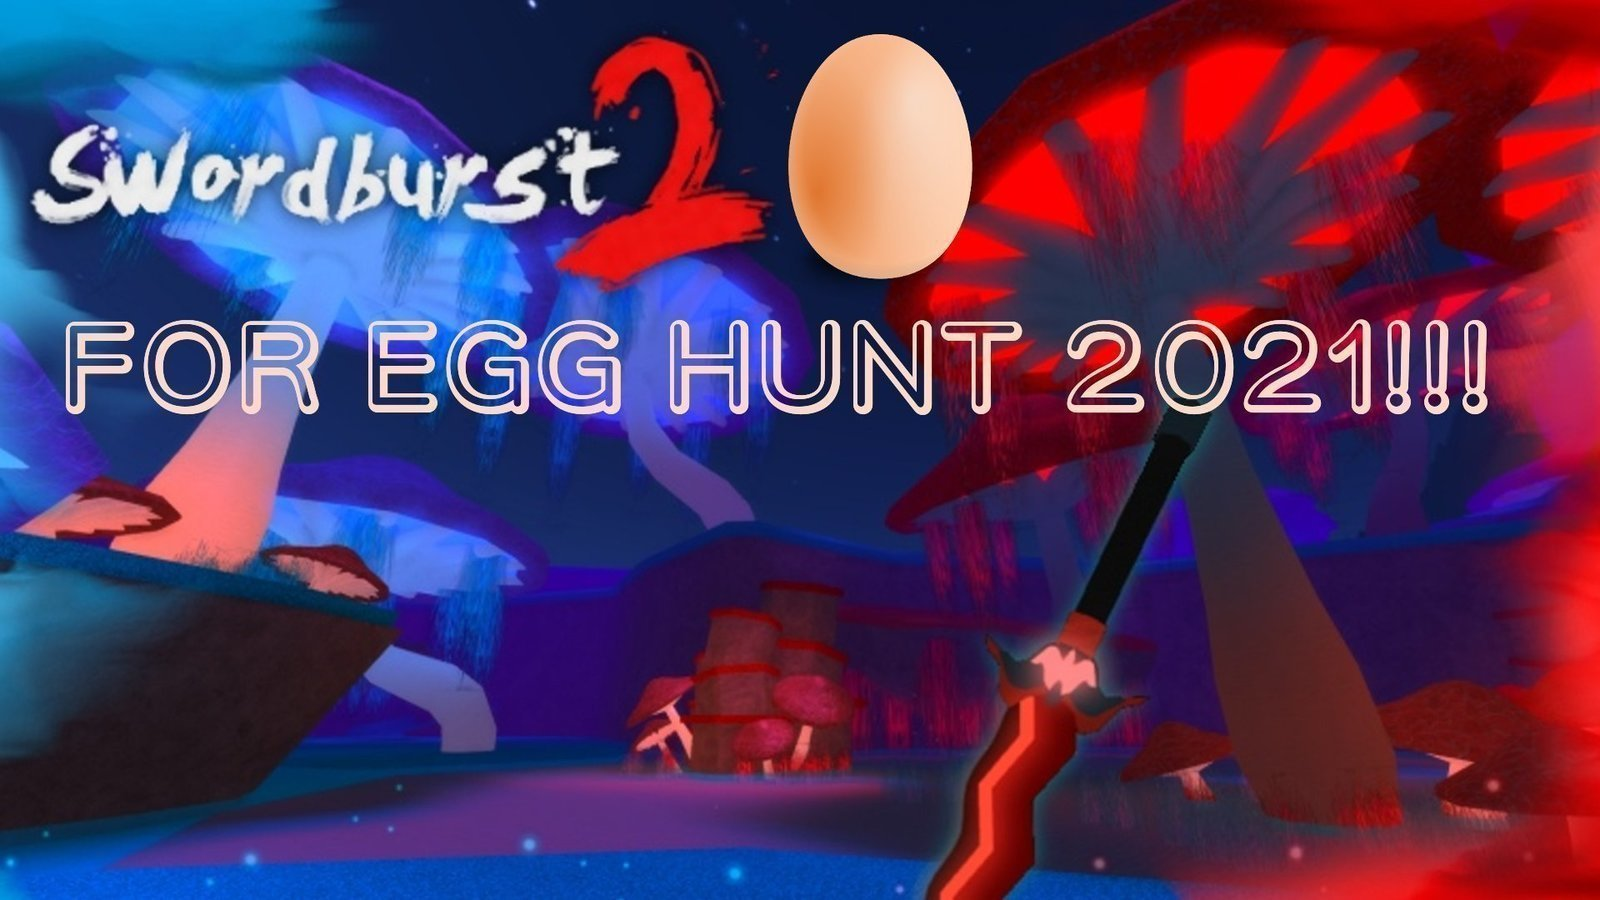 The Hunt 2021